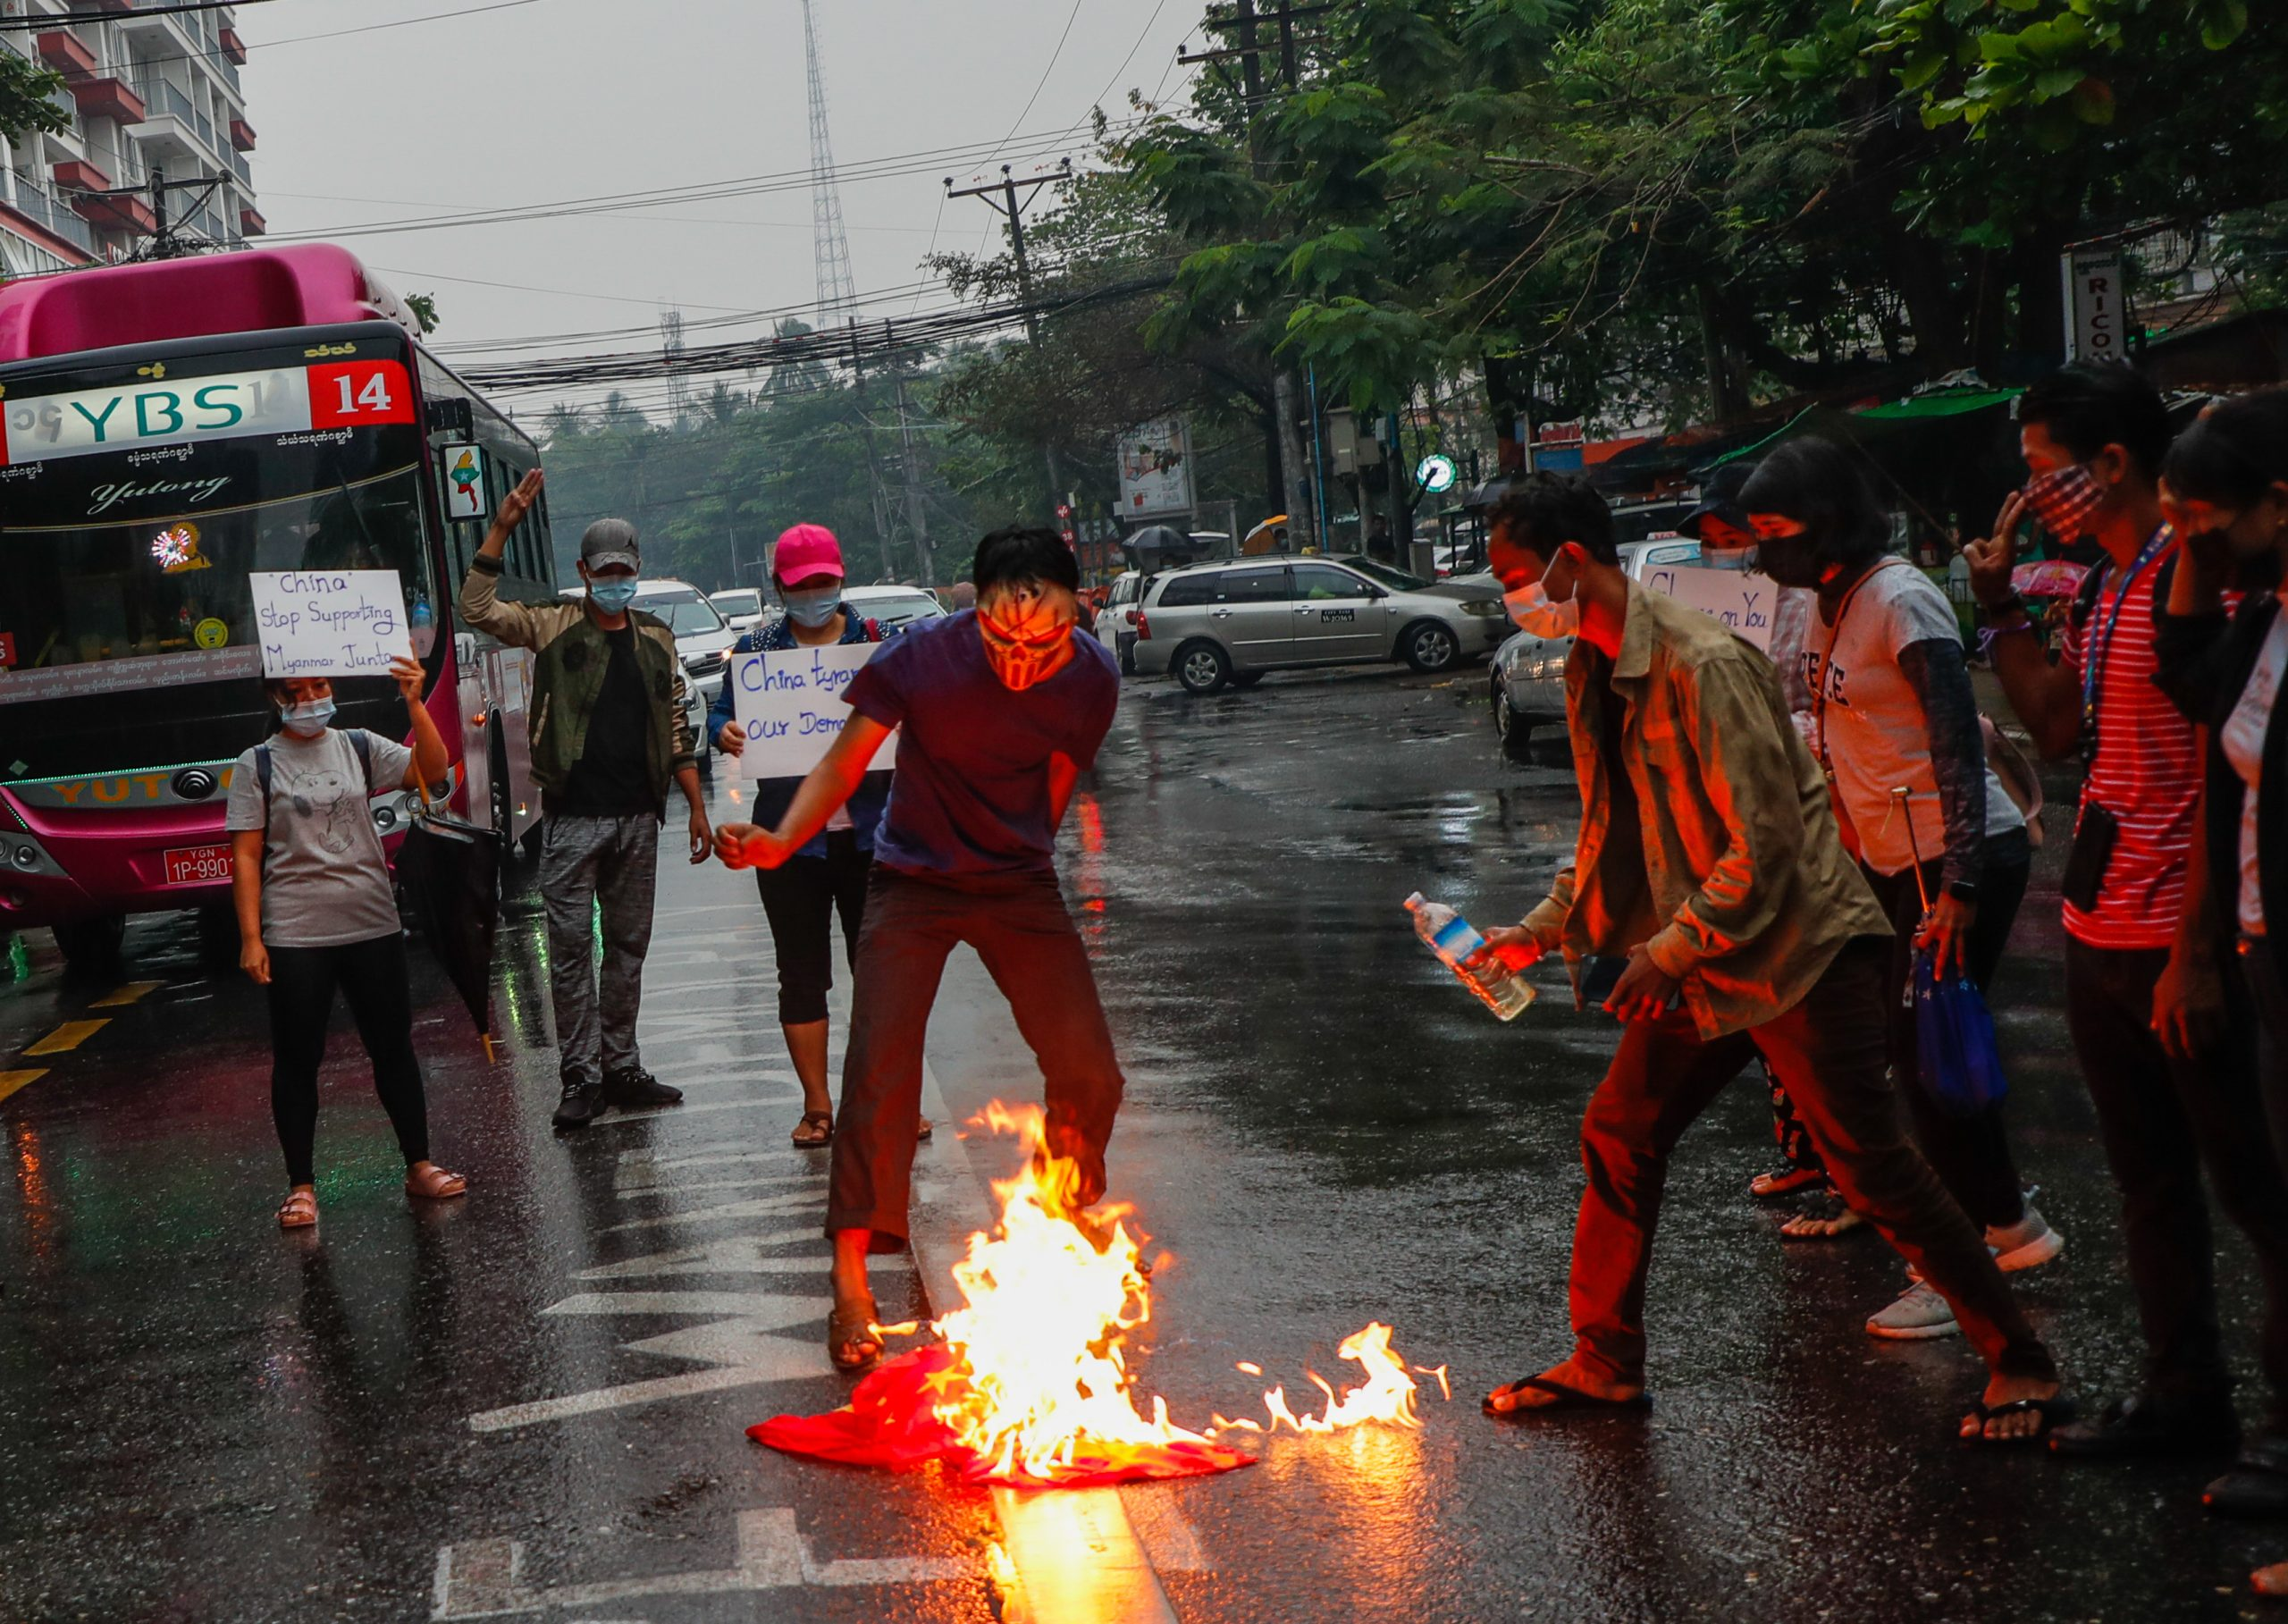 Protesters burn a Chinese flag in Yangon to show their anger at its response to the military coup. (Frontier)